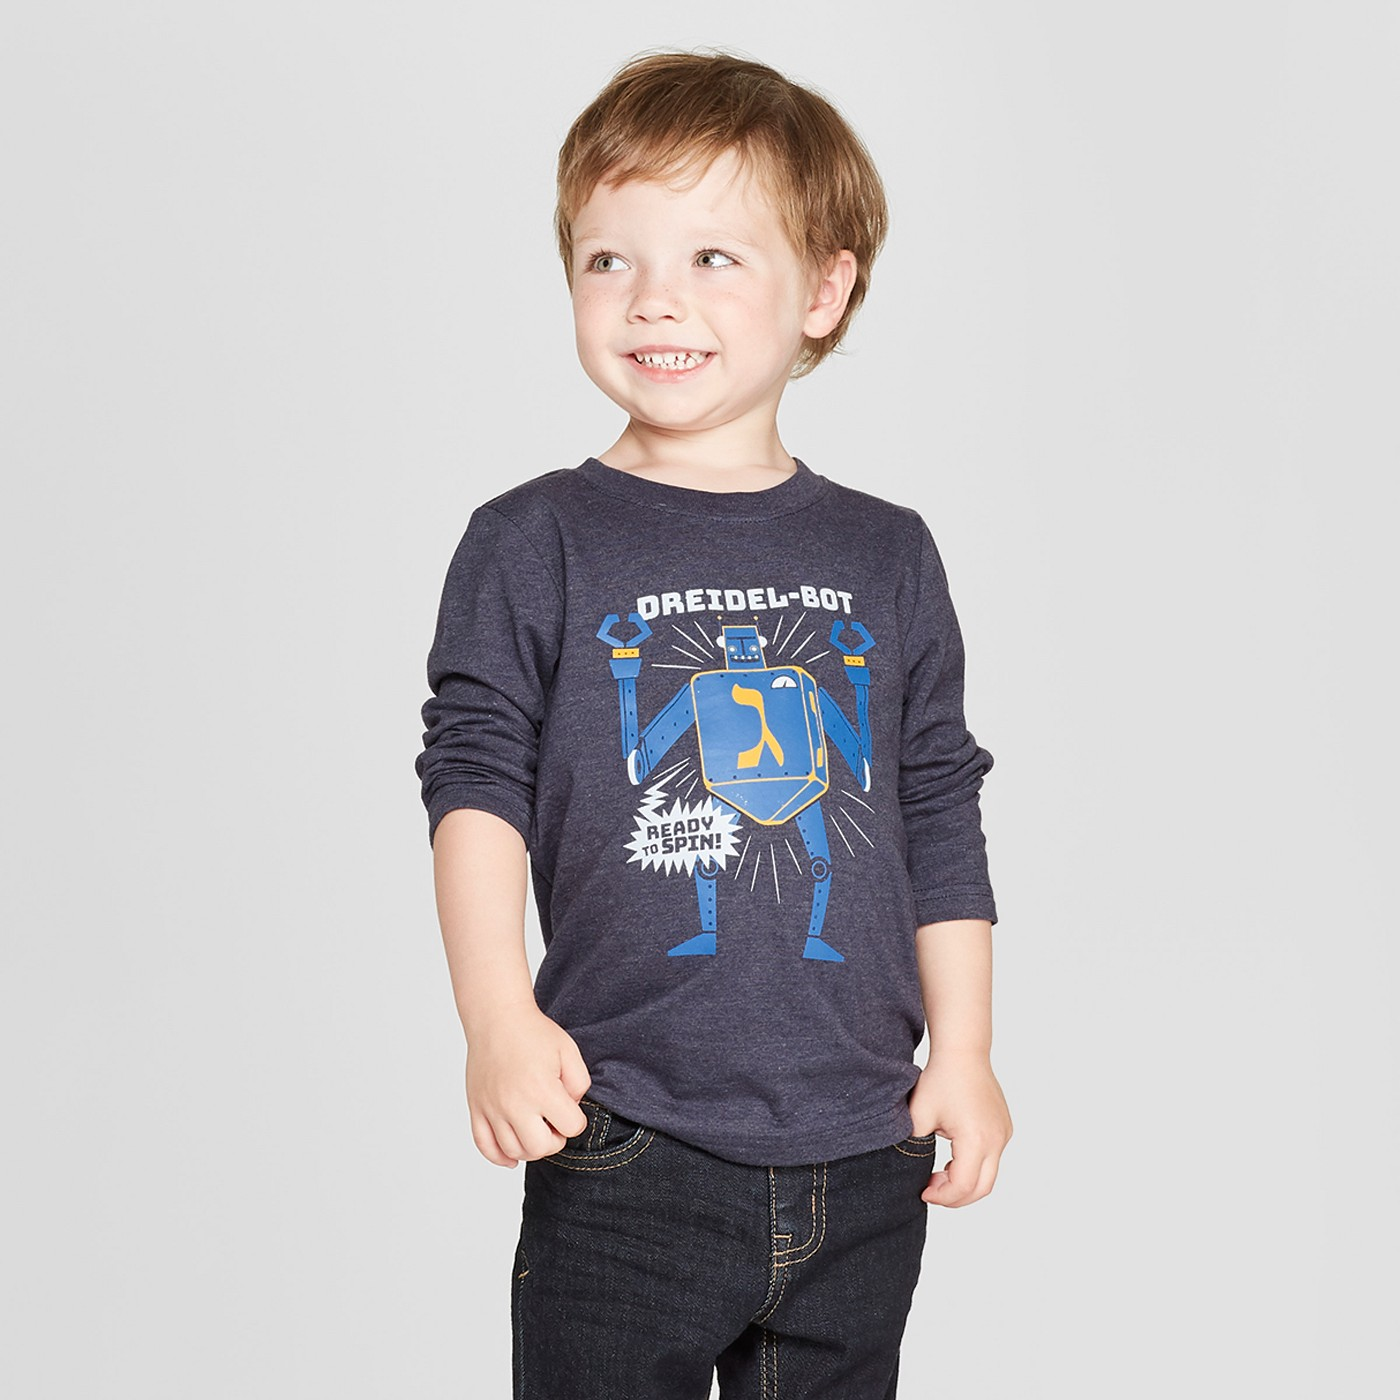 Toddler Boys' Dreidel - Bot Graphic Long Sleeve T-Shirt - Cat & Jack™ Navy - image 1 of 3